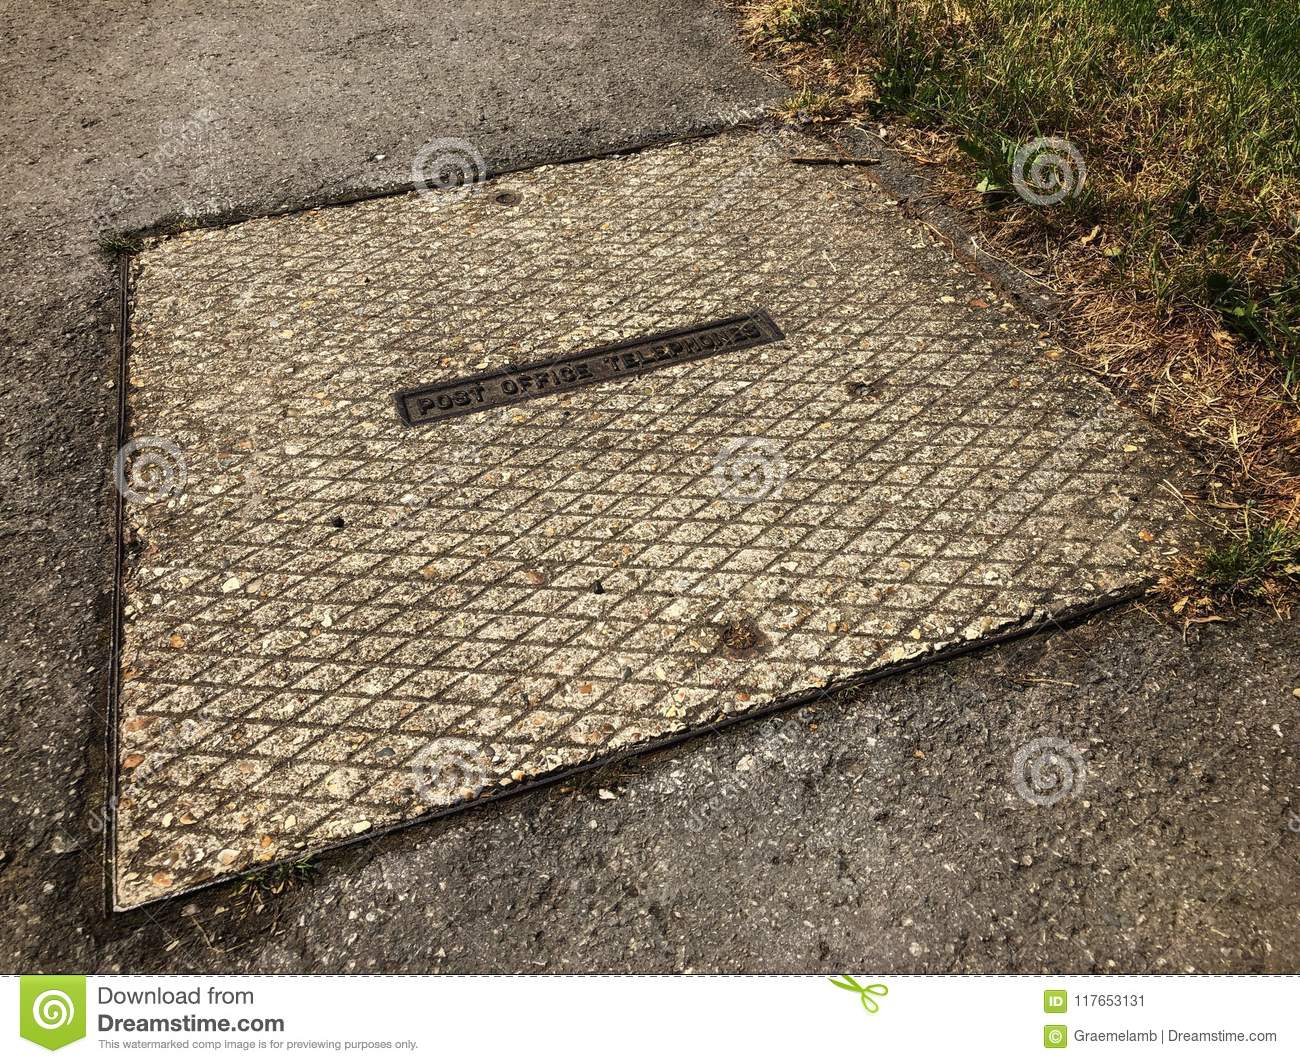 hight resolution of square post office manhole cover leading to underground telephone cables